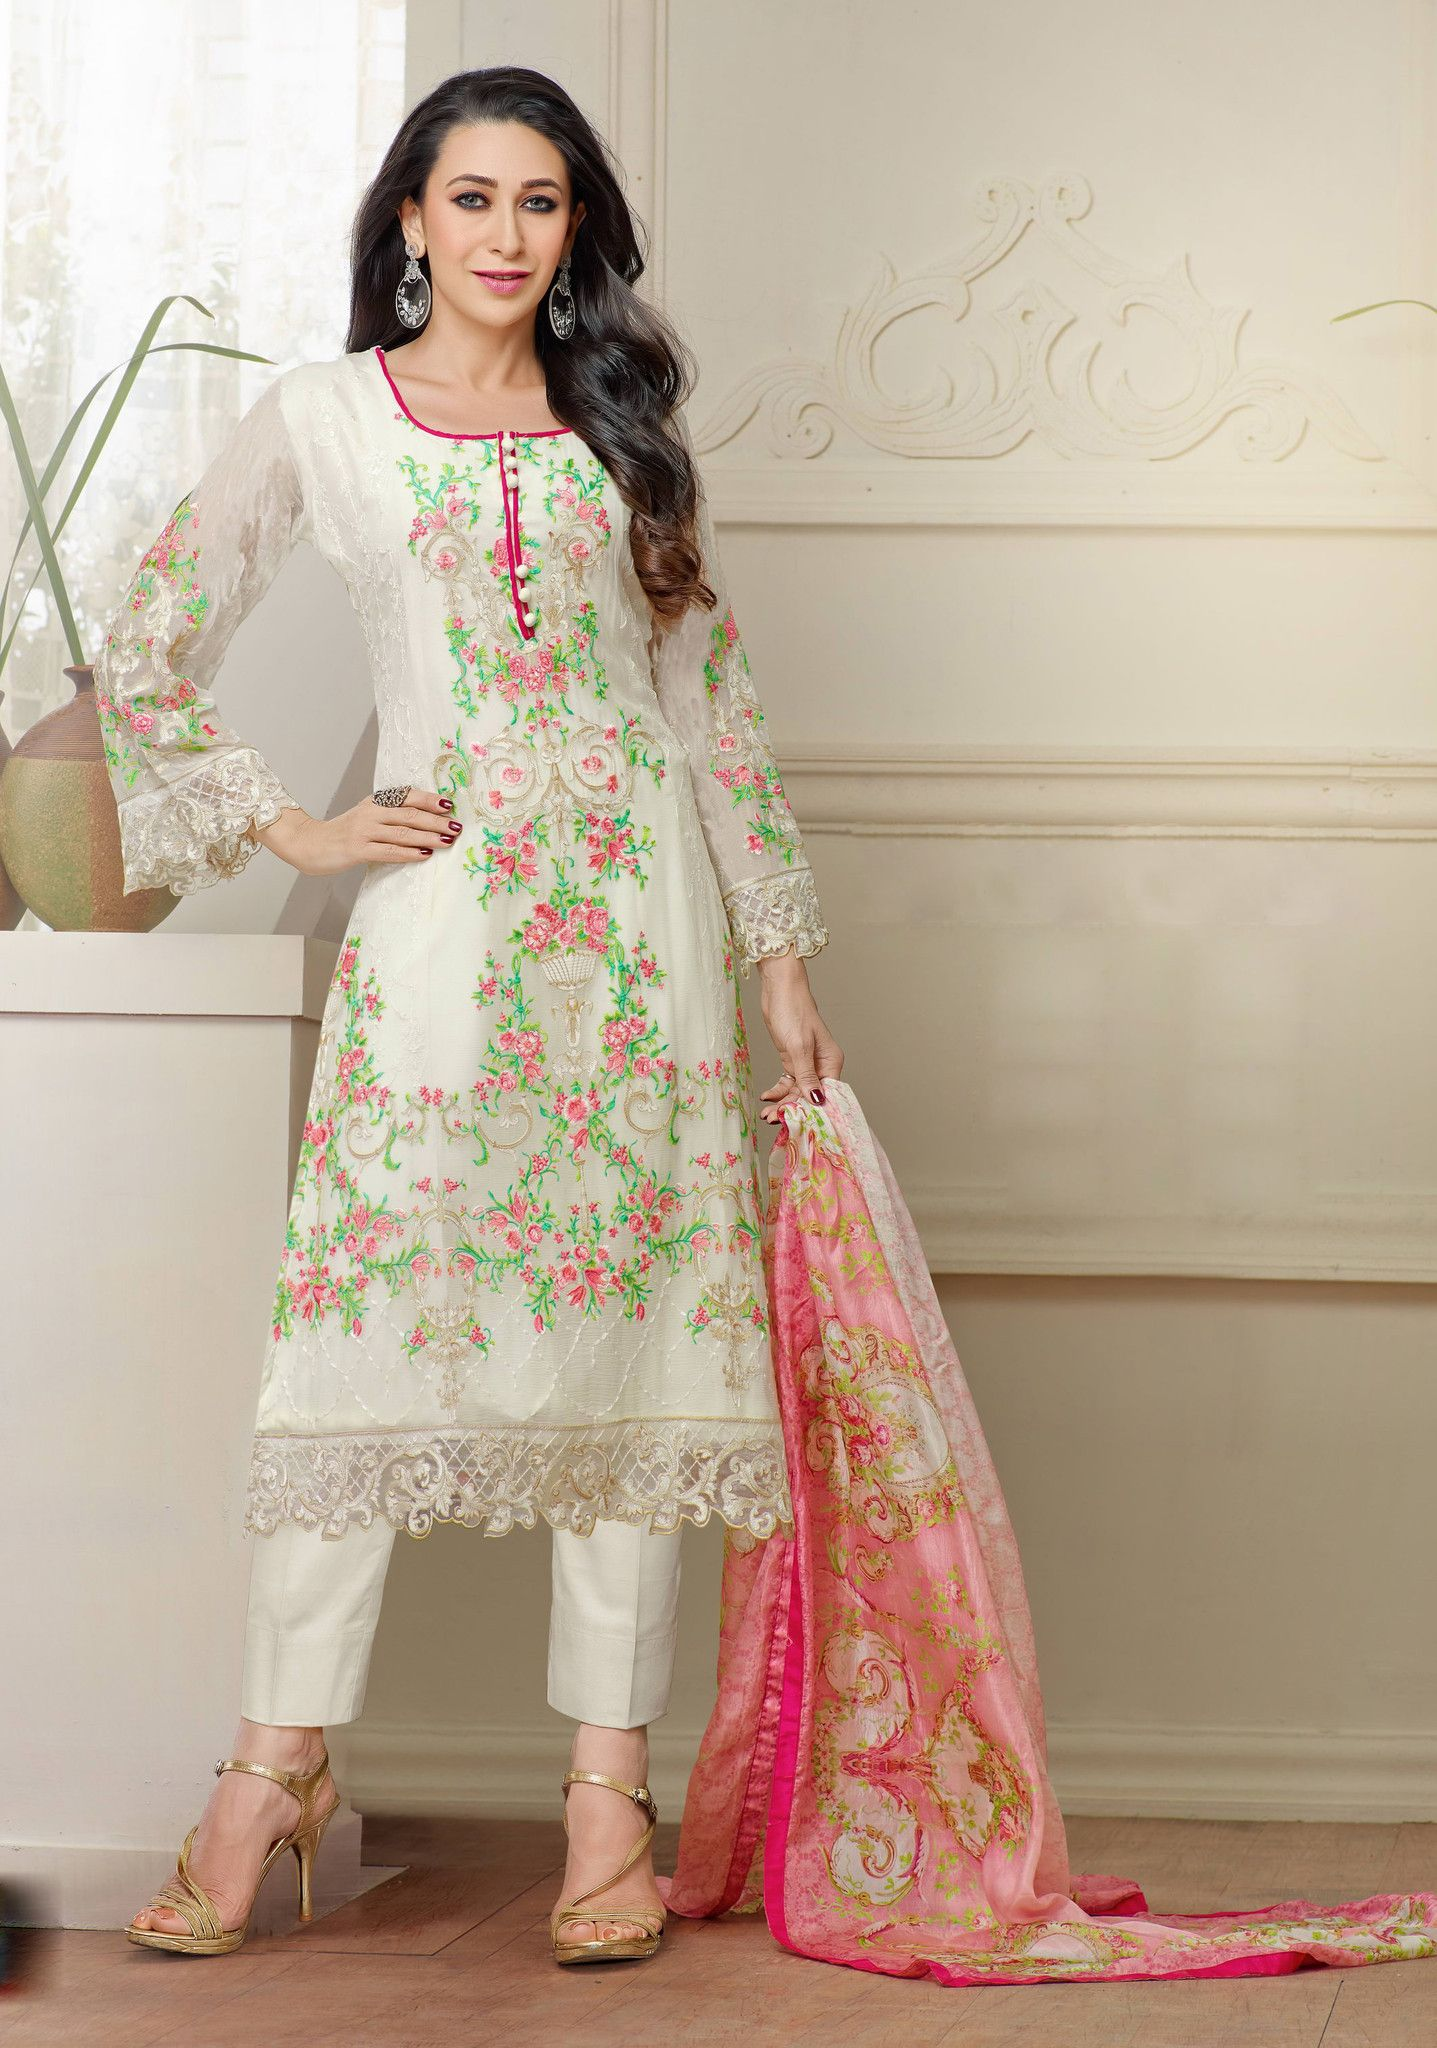 White Embroidered Designer Suits | Dresses | Pinterest